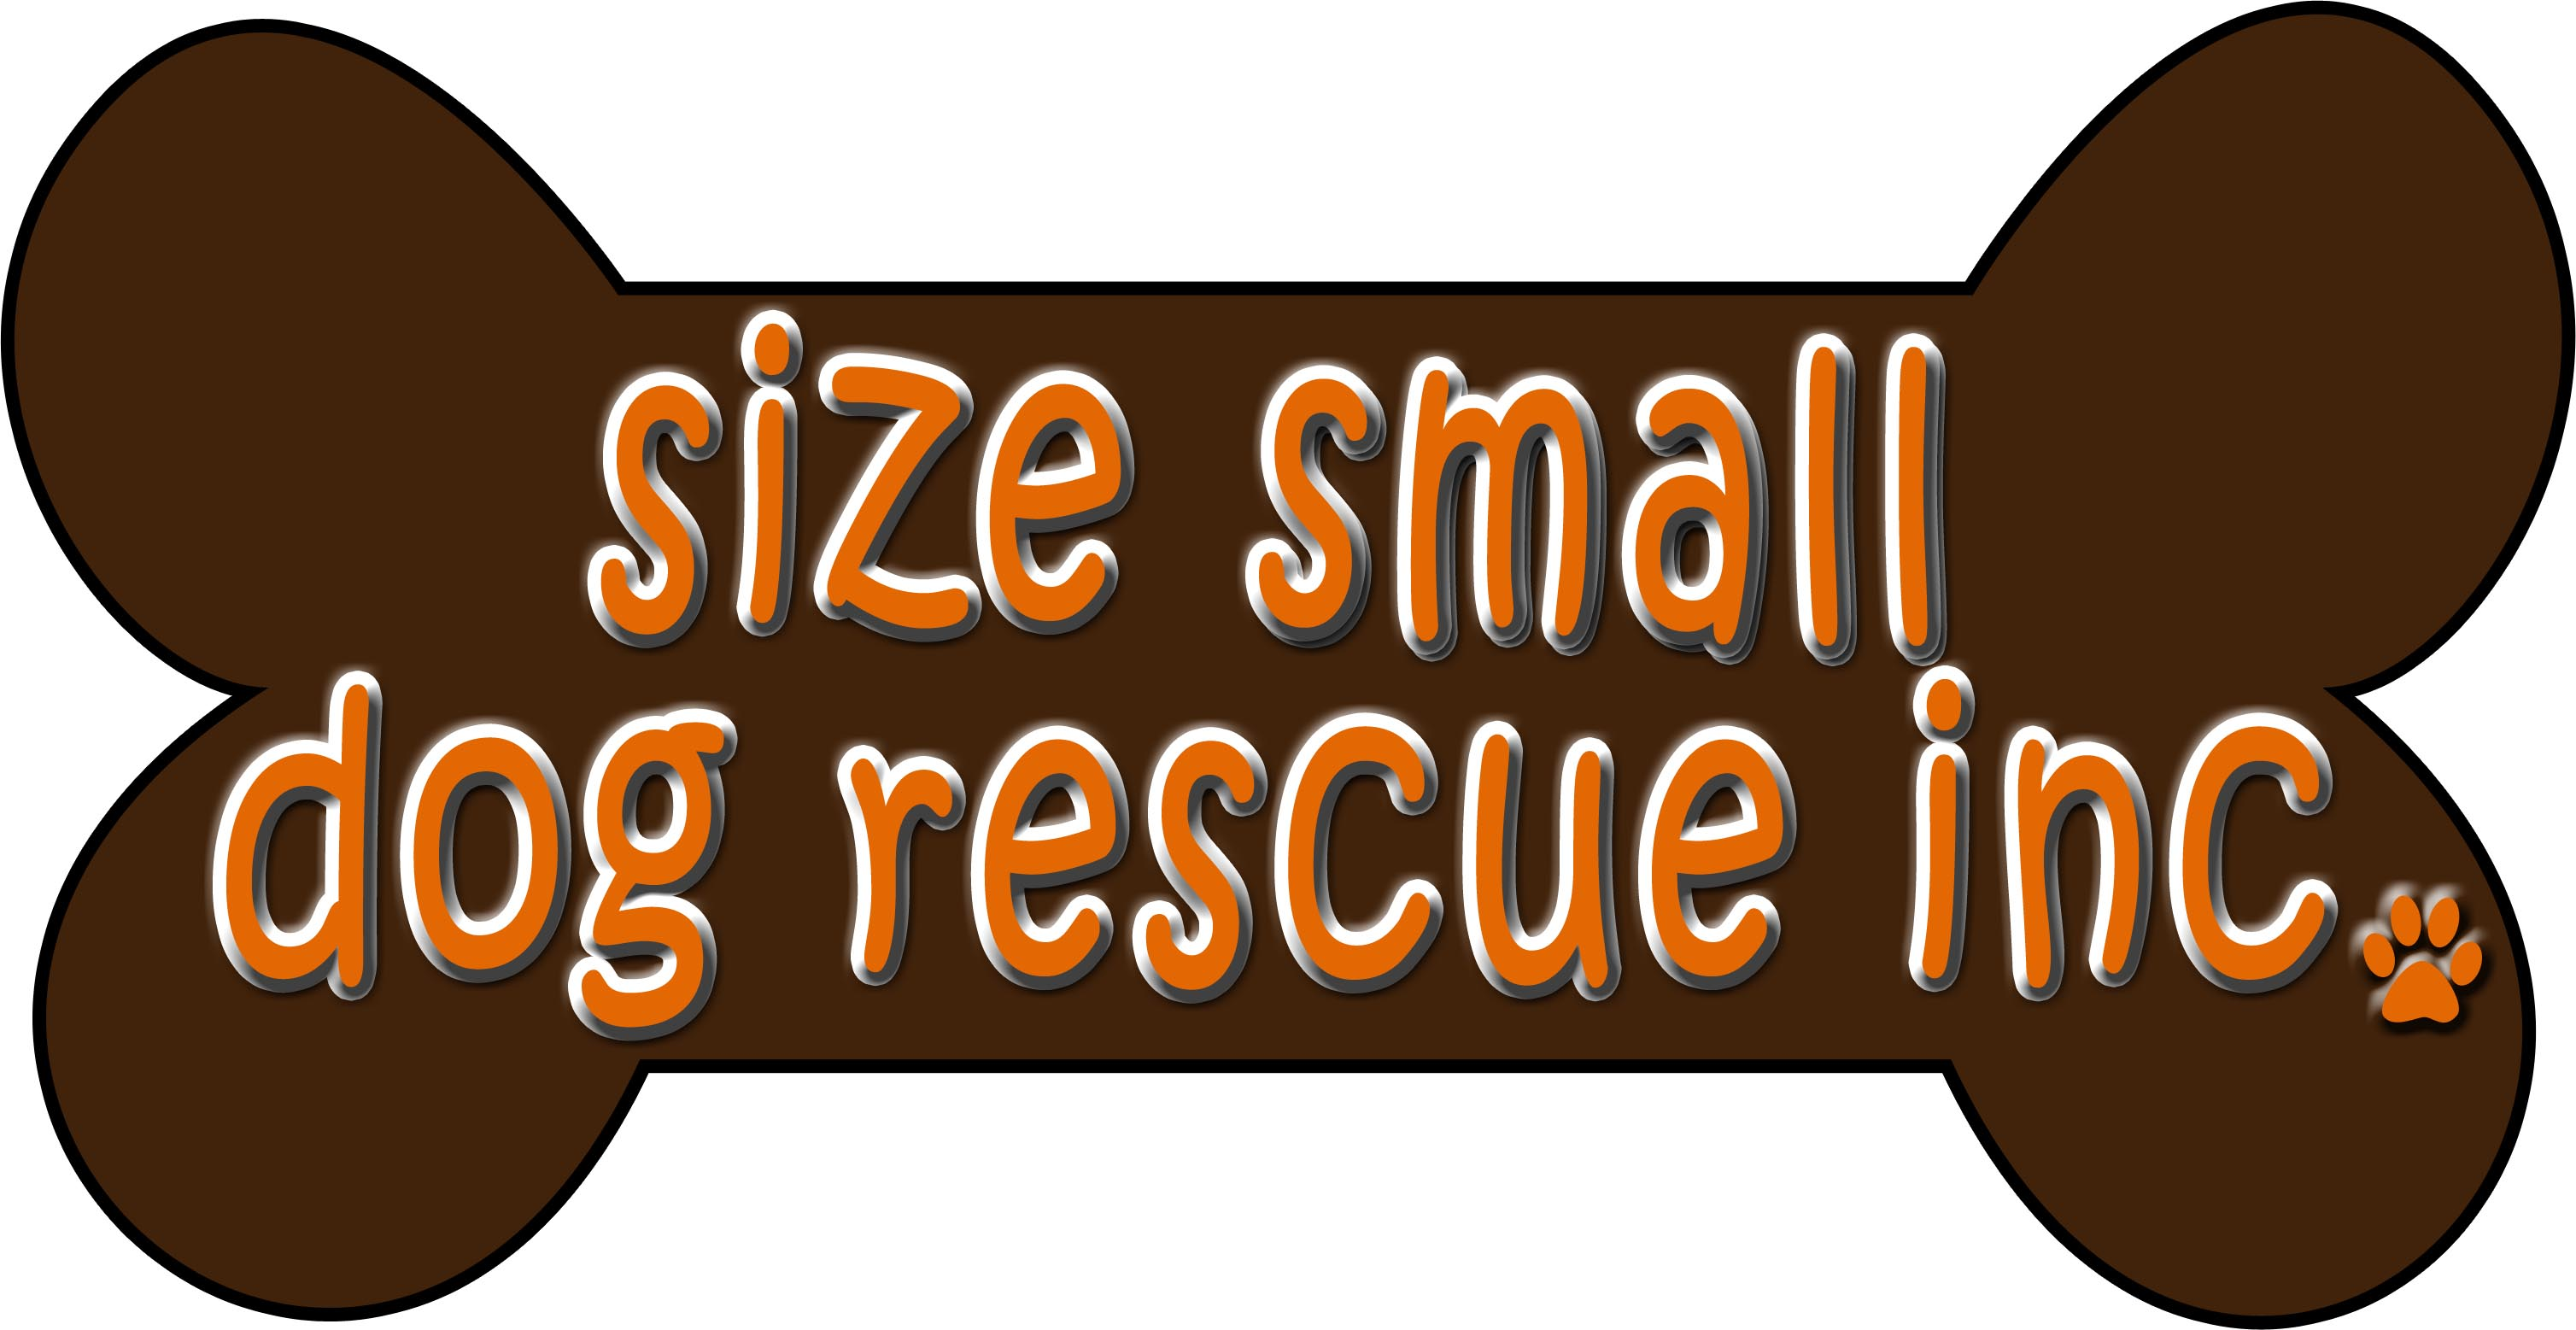 Size Small Dog Rescue